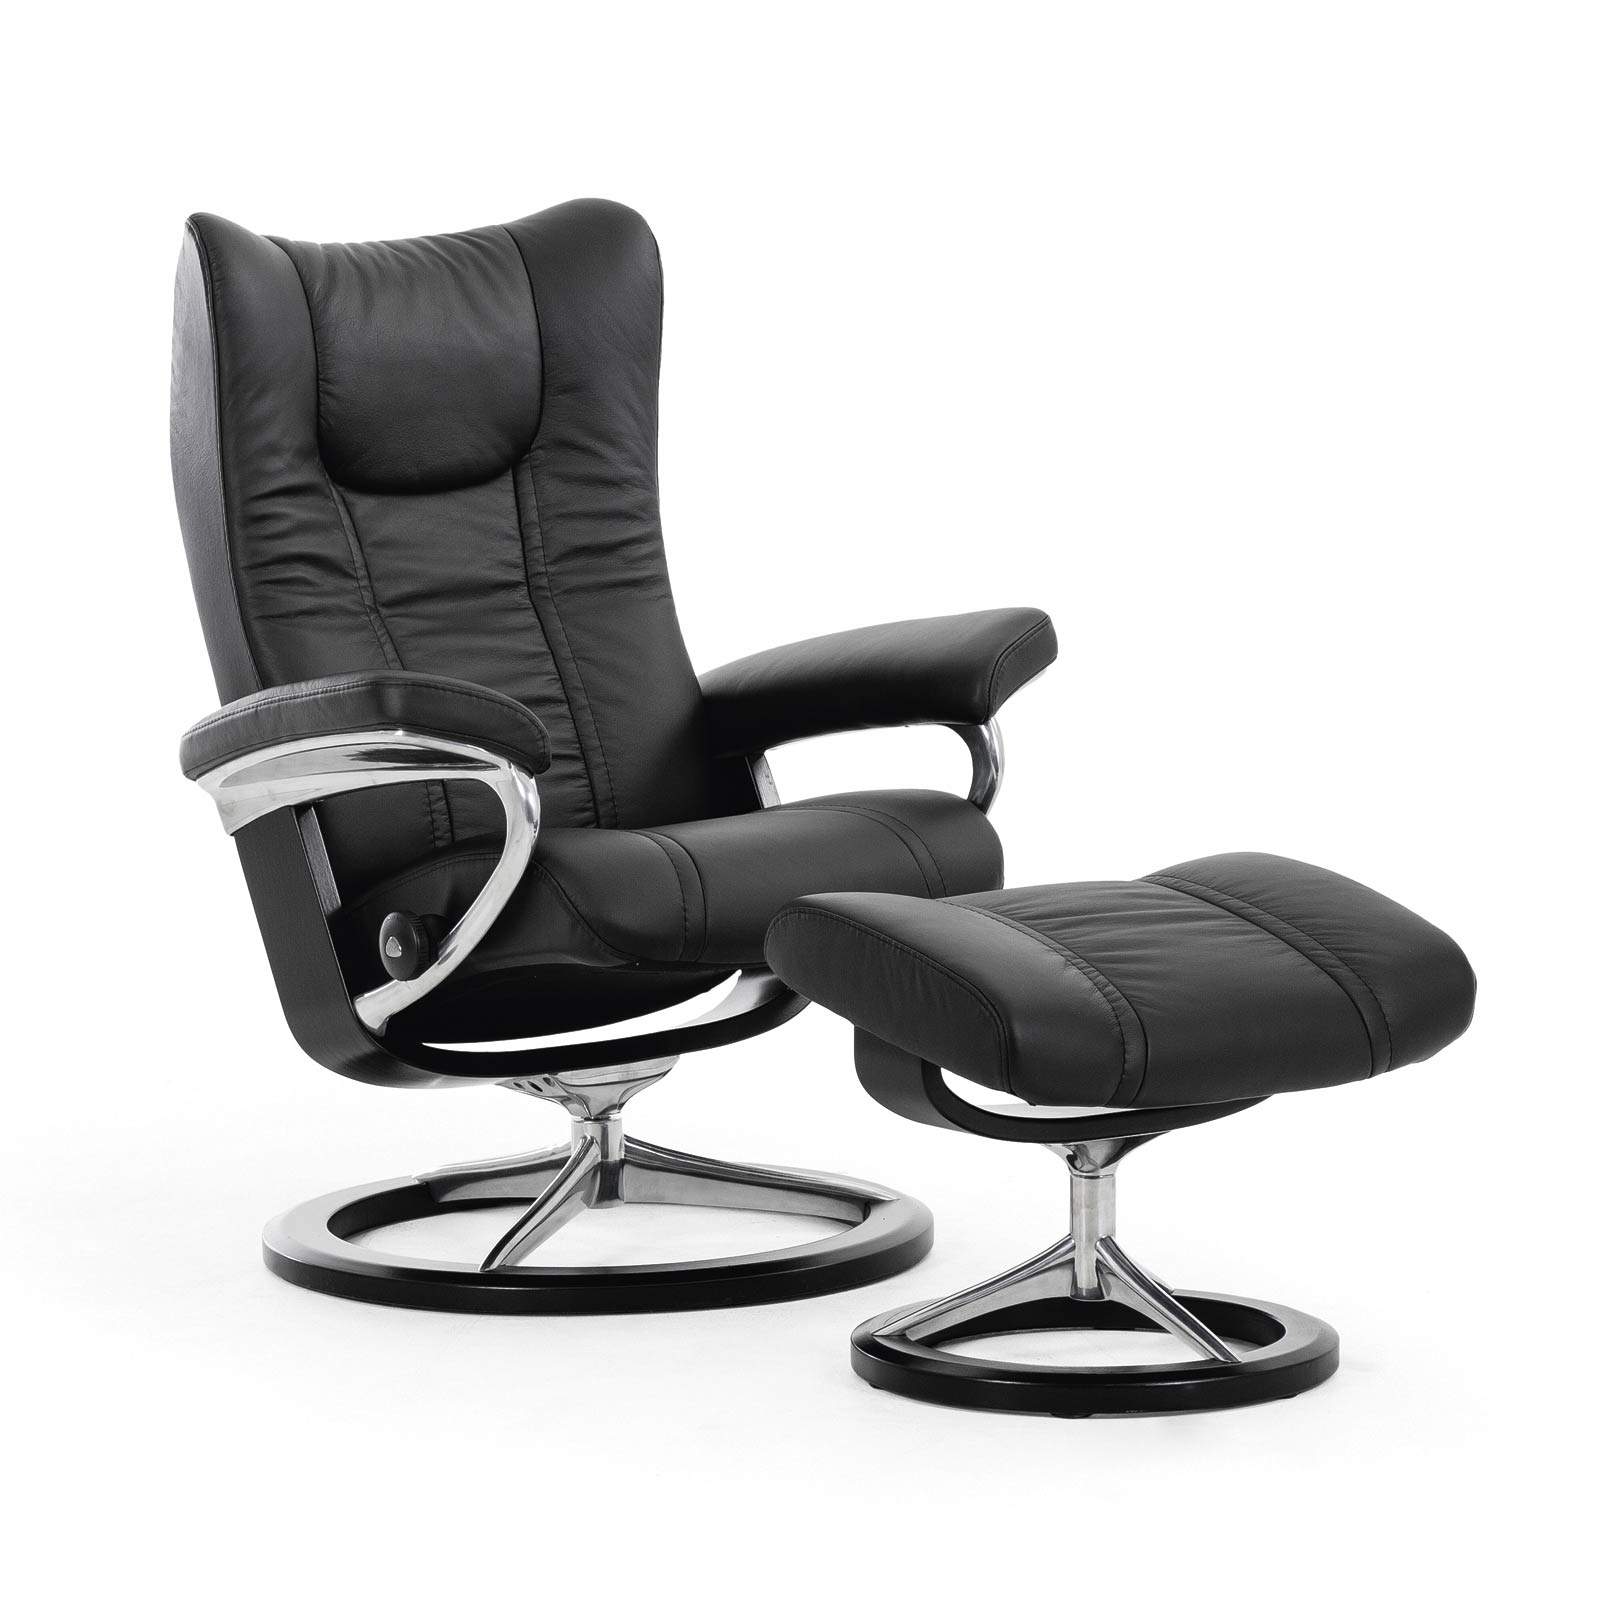 relaxsessel stressless wing paloma black untergestell schwarz mit hocker house of comfort. Black Bedroom Furniture Sets. Home Design Ideas